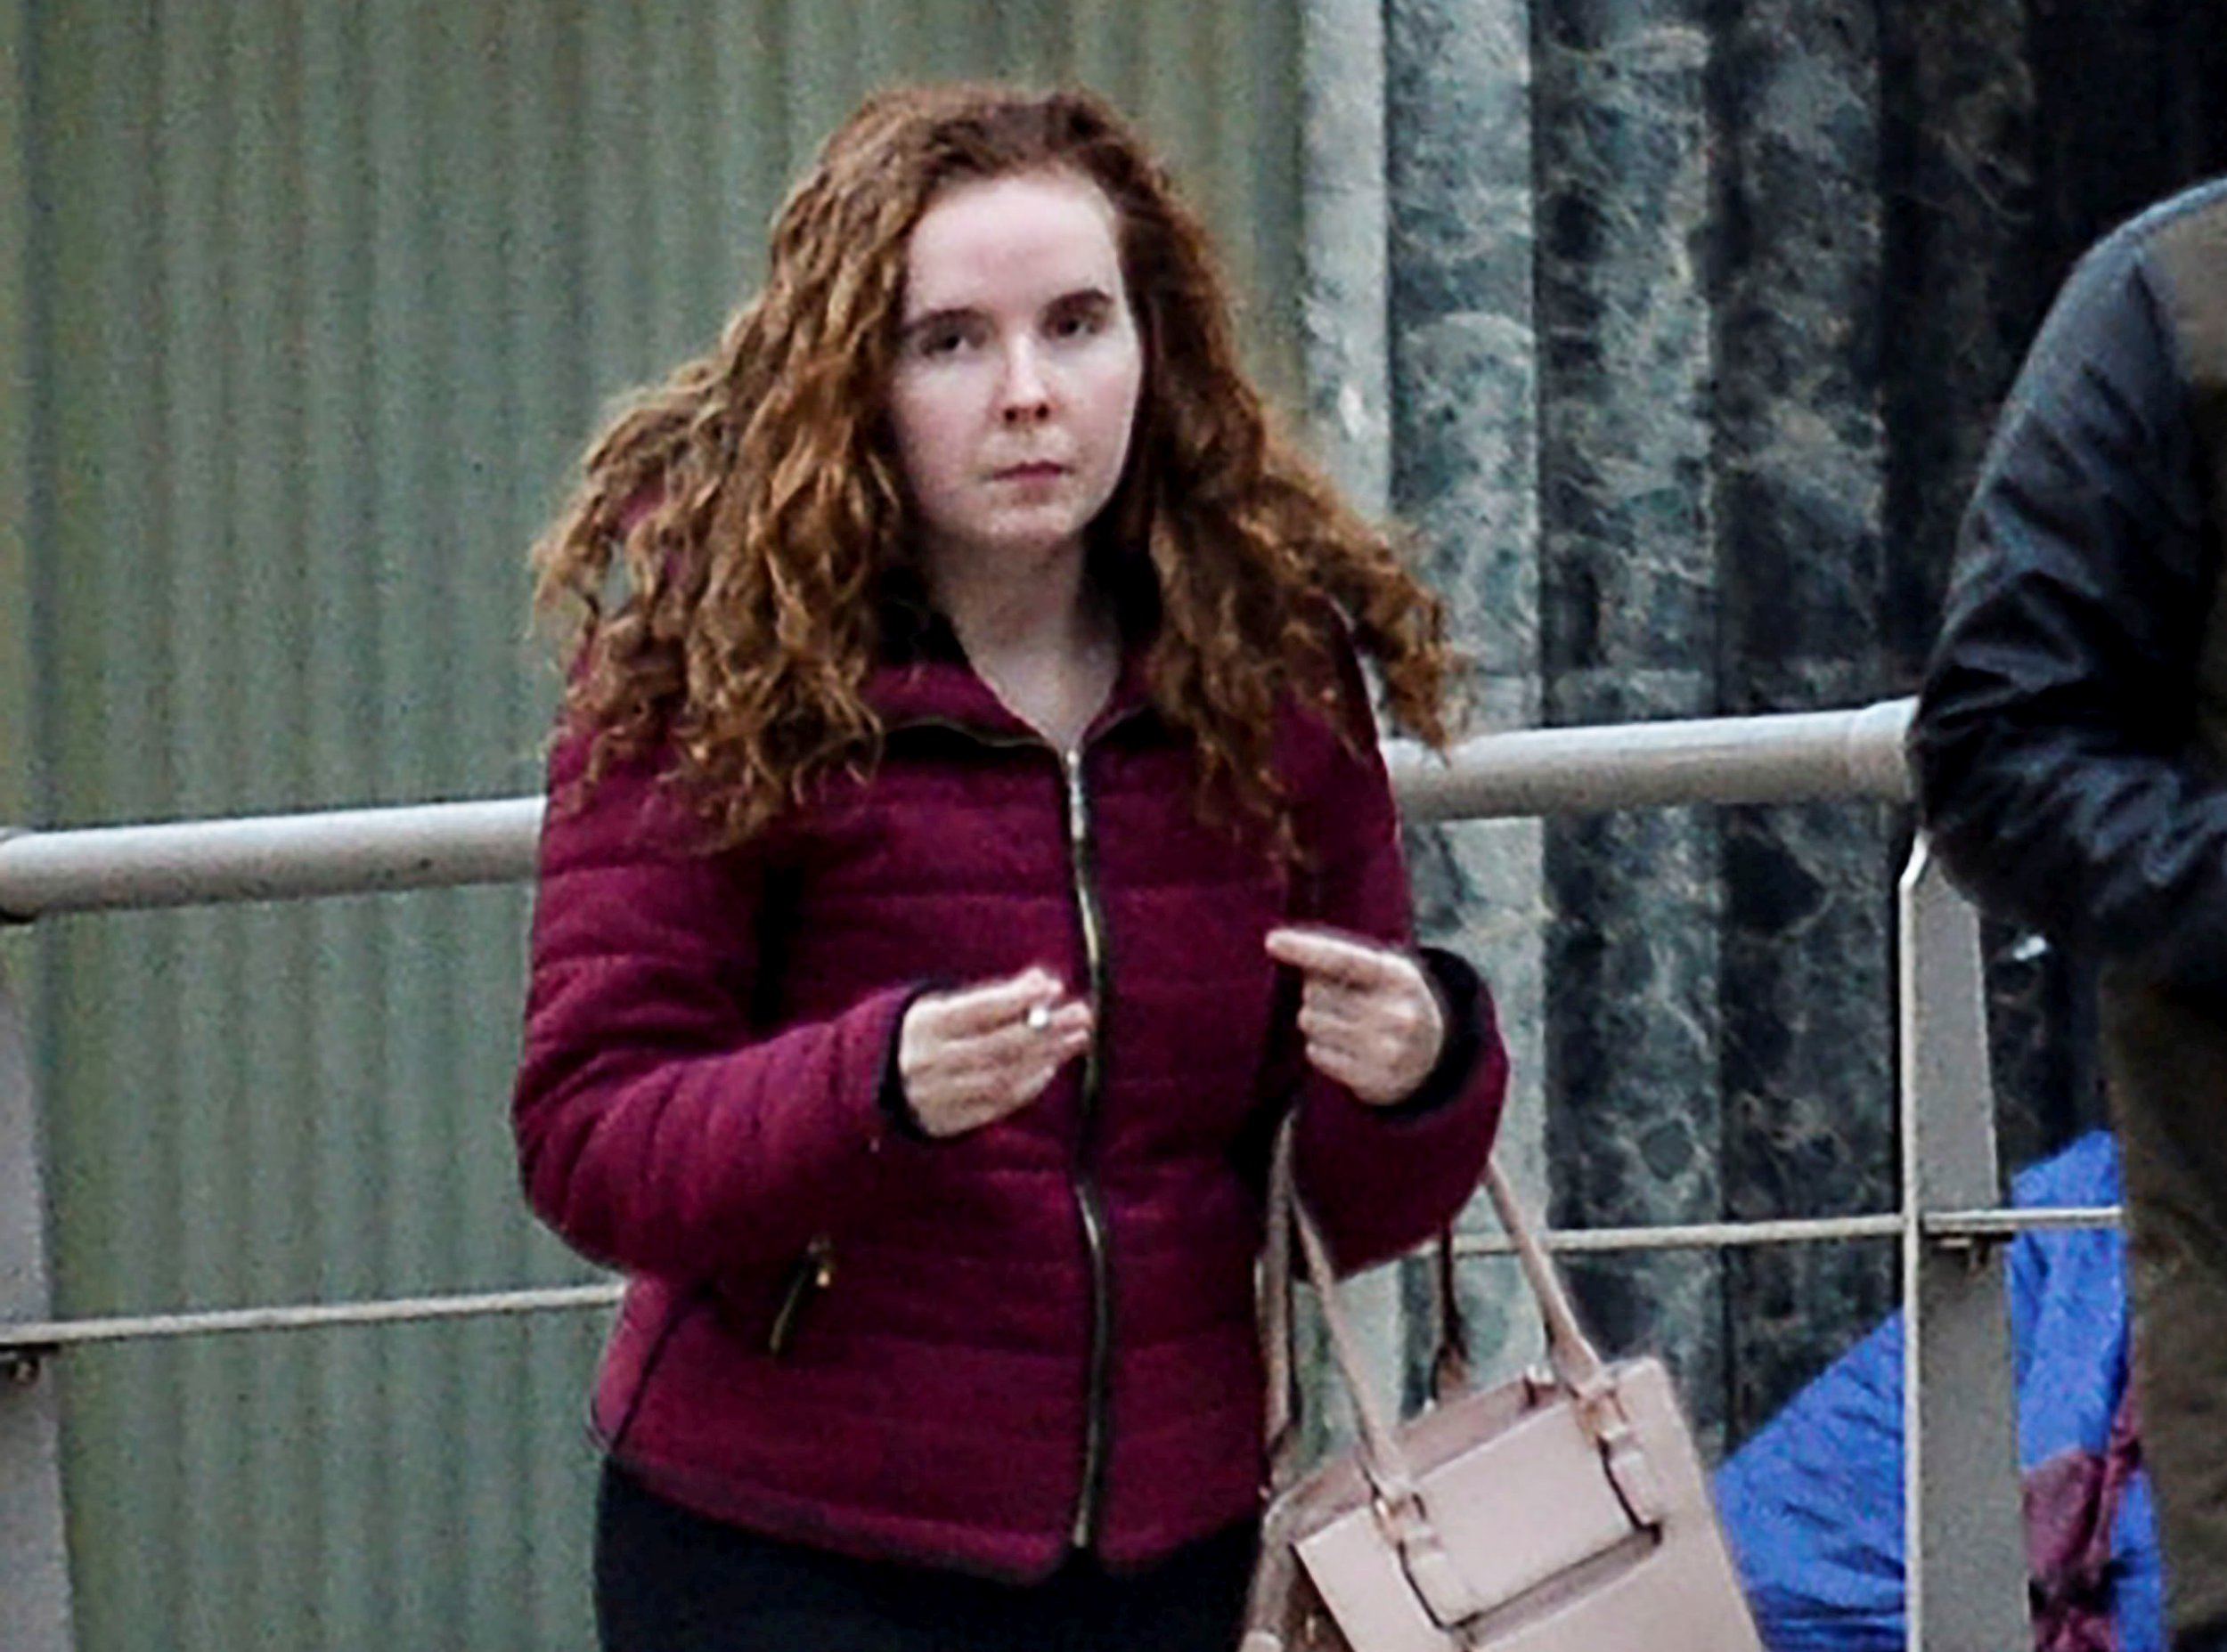 "Lauren Coyle, 19 arrives at Liverpool Crown Court this morning, October 19th, 2018 as the trial continues in the alleged manslaughter of her 19 month old daughter Ellie-May Minshull-Coyle. A toddler who died after being tied face-down in a ""cage"" bed experienced ""immense suffering"", a court has heard. Ellie-May Minshull-Coyle, aged 19 months, died last March in a flat she shared with her mother, stepfather and a lodger in Lostock Hall, Preston. A cot had been tied to the bed frame creating a ""monstrous cage"", Liverpool Crown Court was told. Lauren Coyle, 19, Reece Hitchcott, 20, and Connor Kirby, 20, each deny her manslaughter."